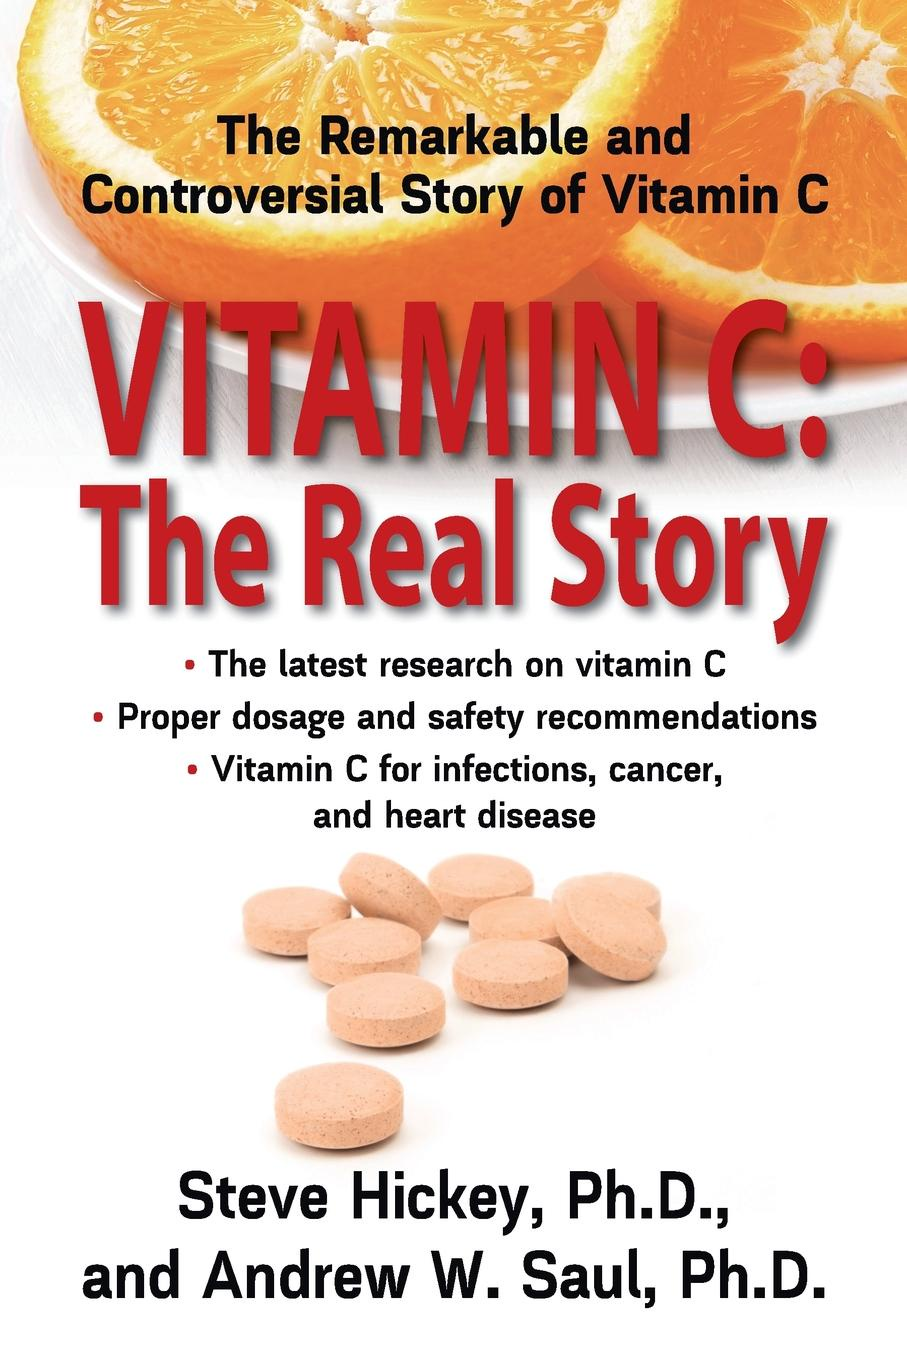 PhD Steve Hickey, PhD Andrew W. Saul Vitamin C. The Real Story 100g vitamin c powder